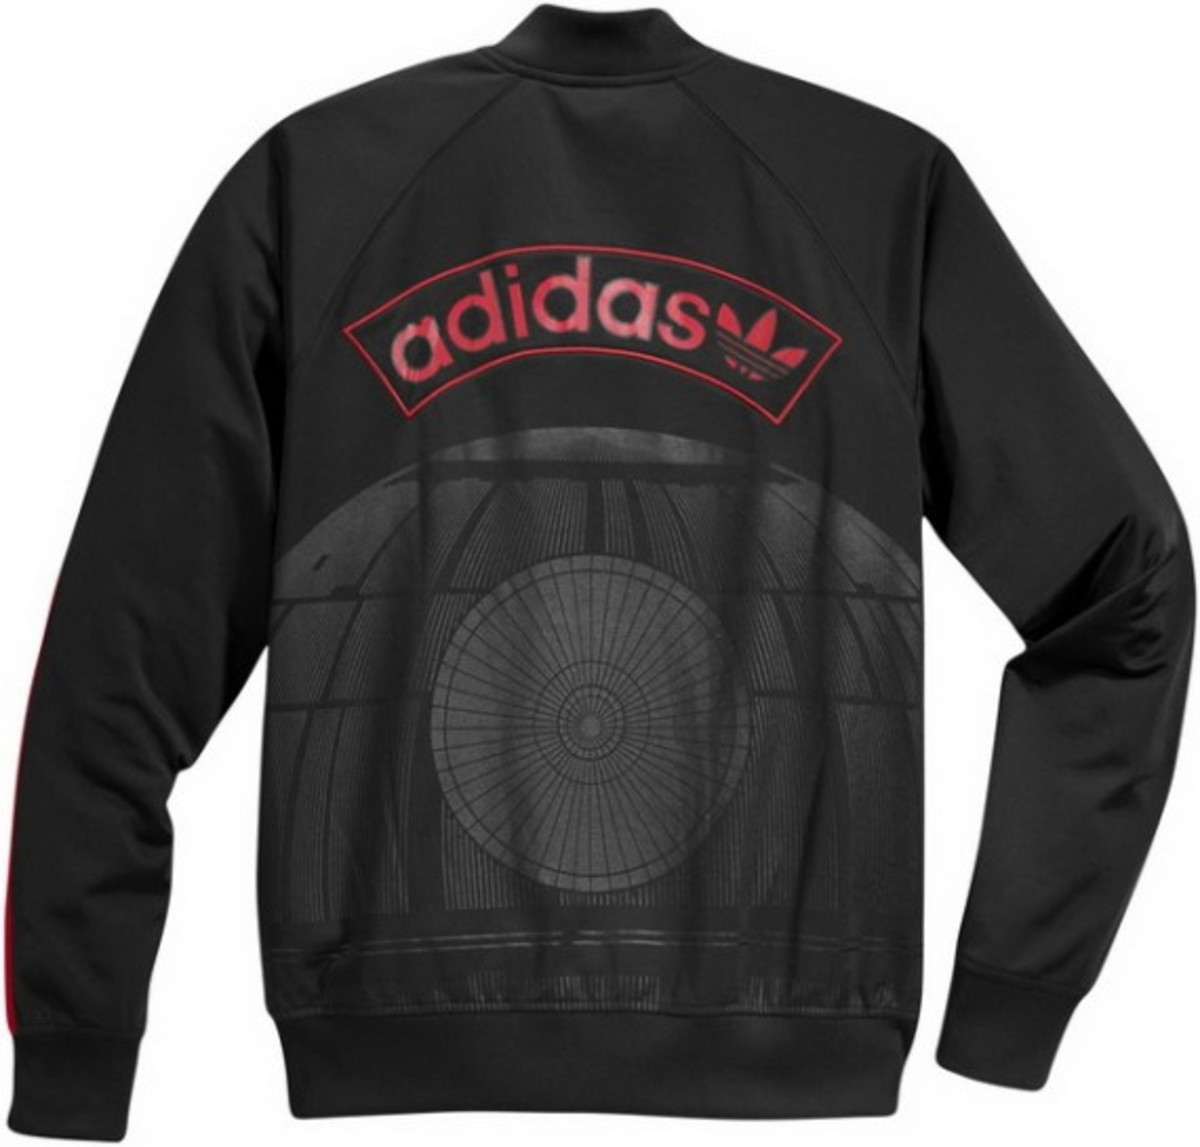 star-wars-adidas-originals-2011-apparel-29